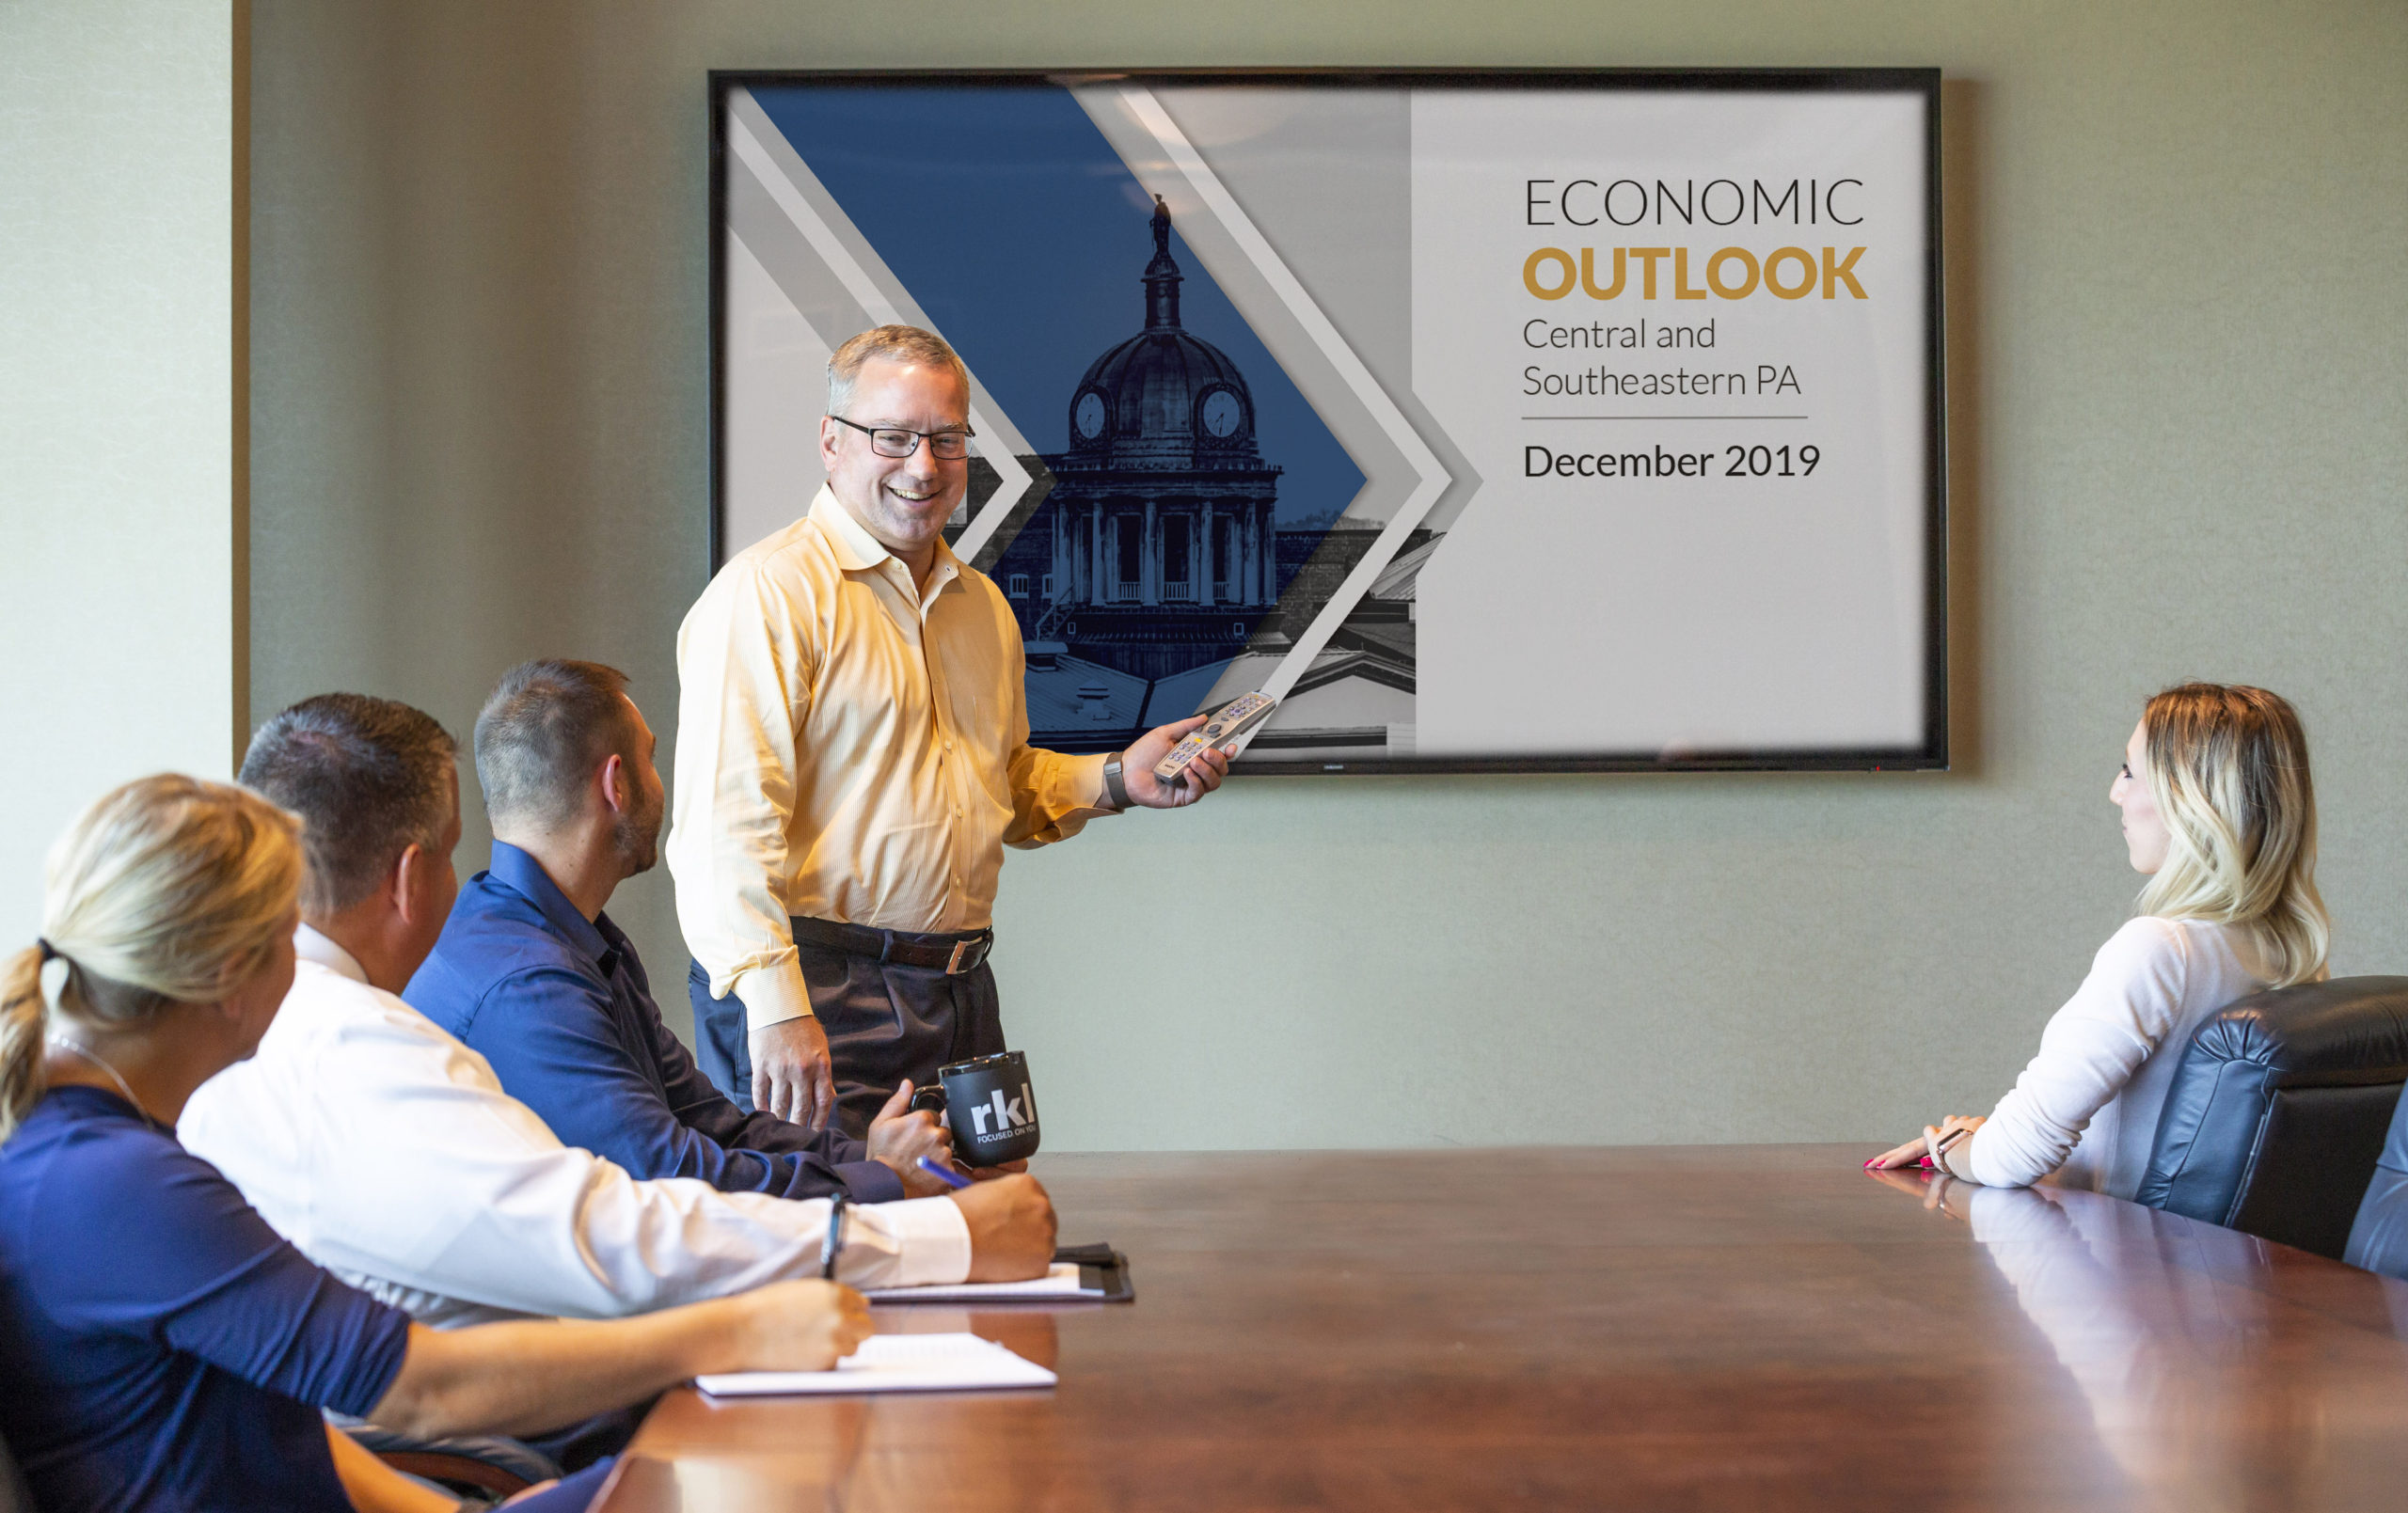 RKL Takes Stock of Local, National Data in Latest Economic Outlook